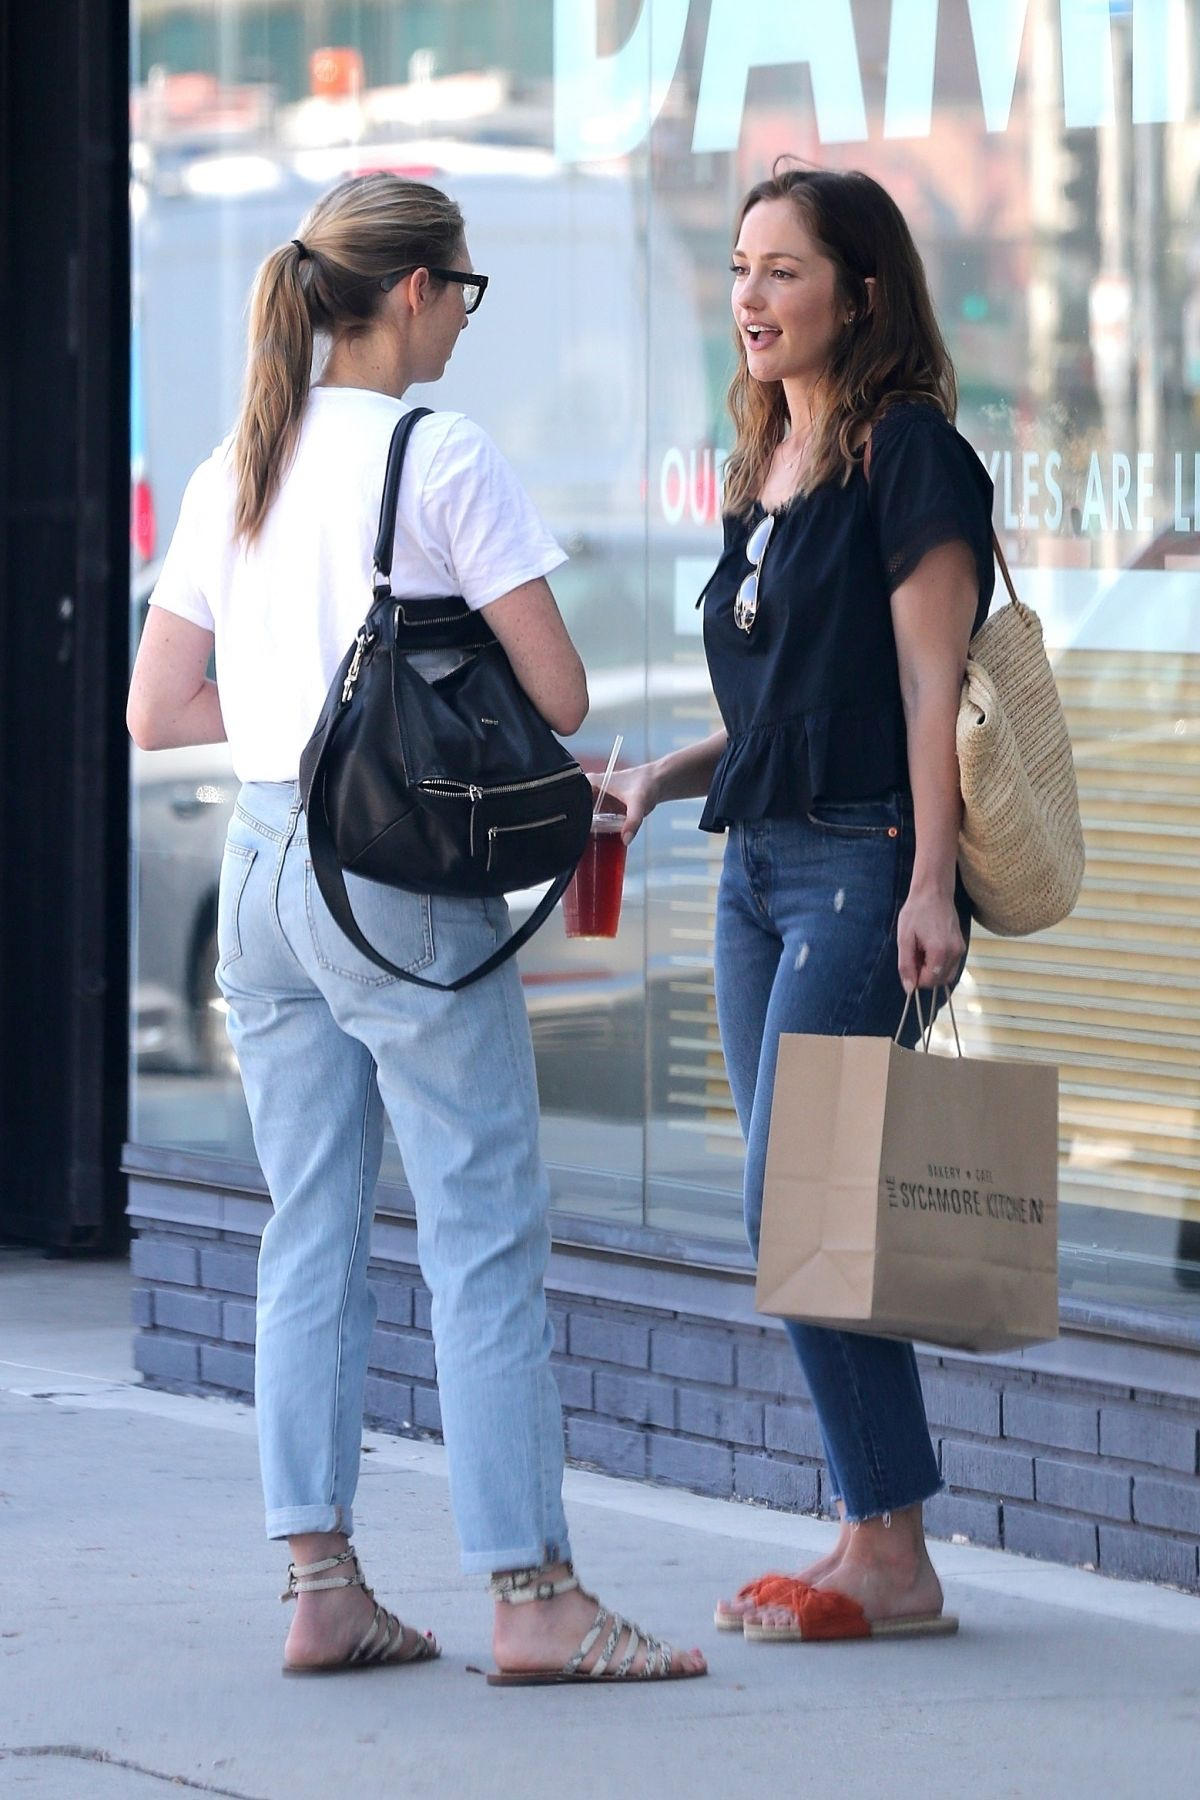 Minka Kelly Catches up with a grilfriend over lunch at Sycamore ...